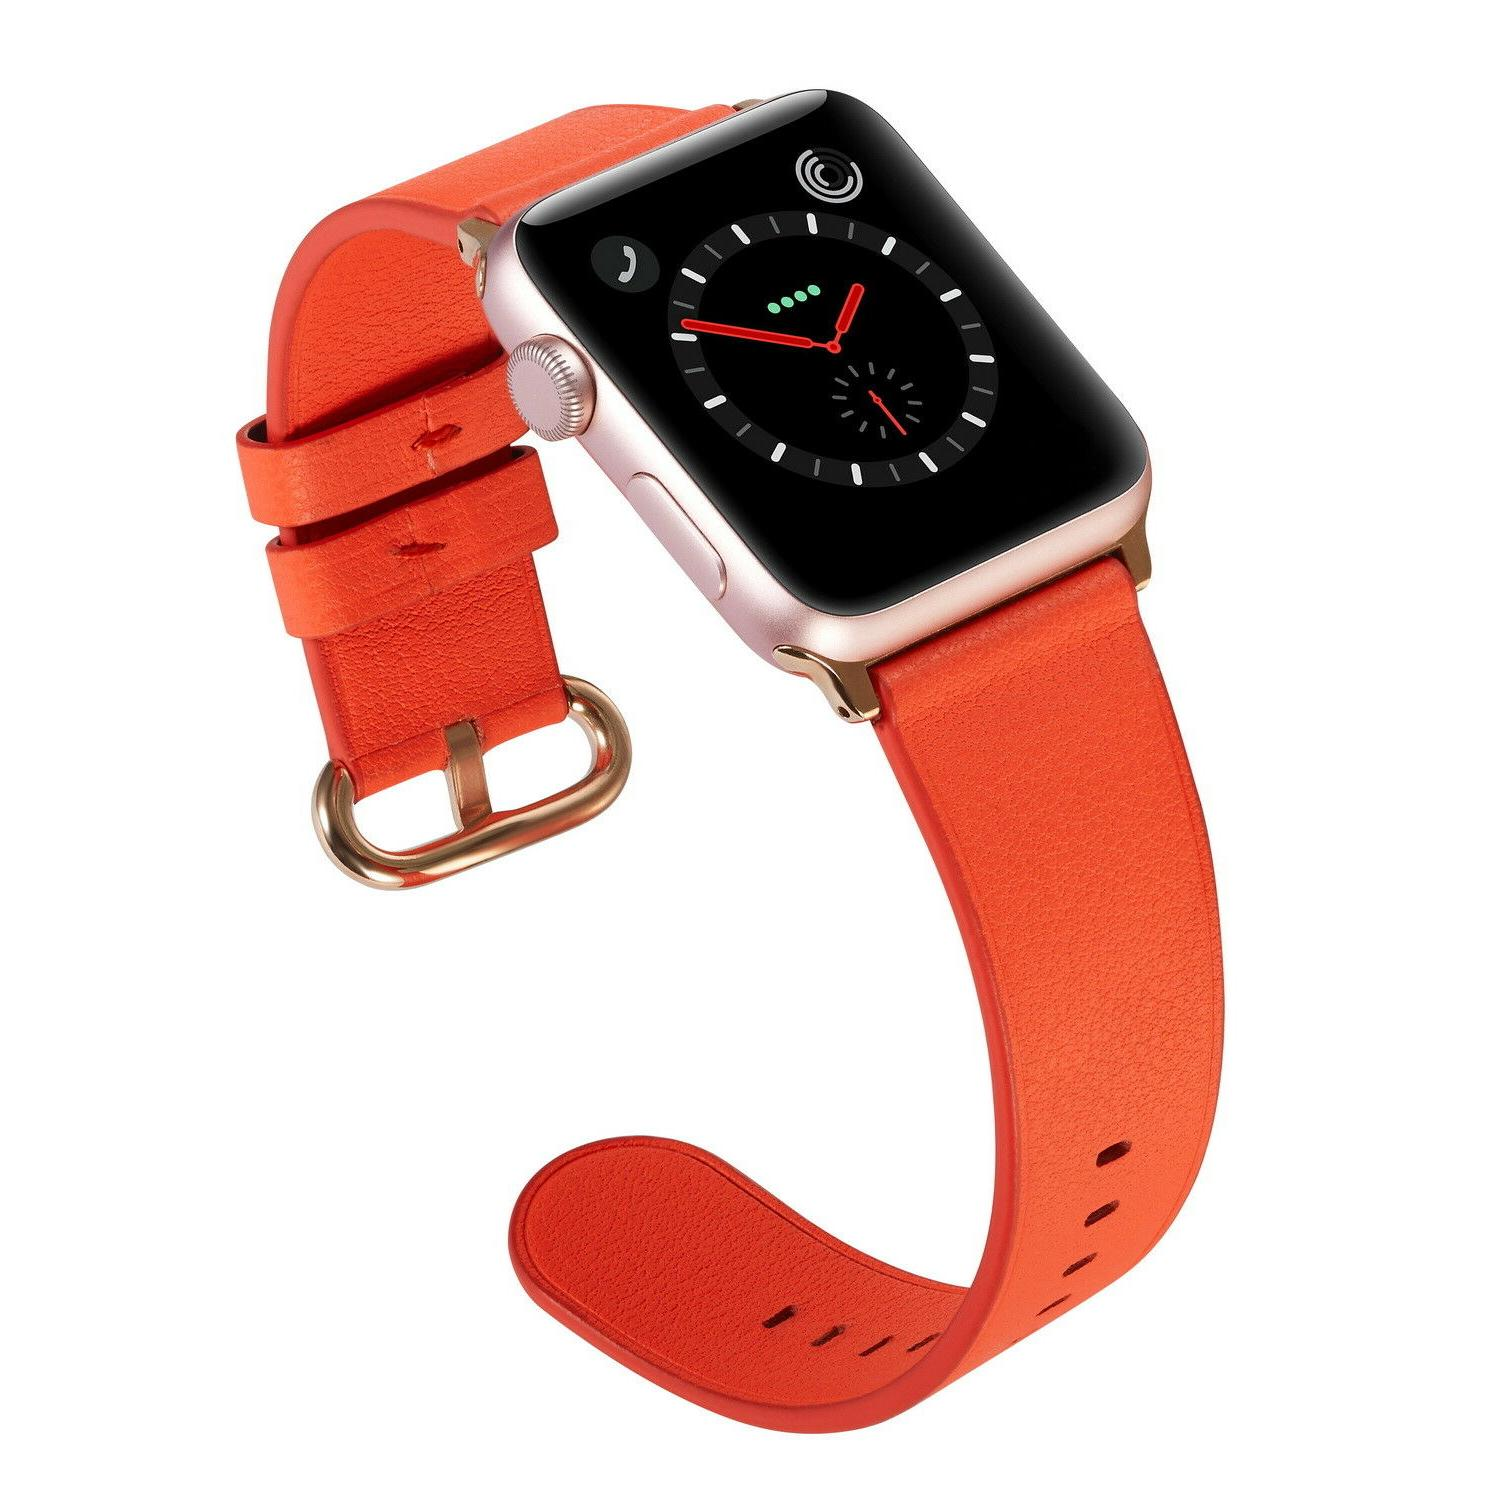 PASBUY Leather Strap for Apple Watch 3 1 Hermes